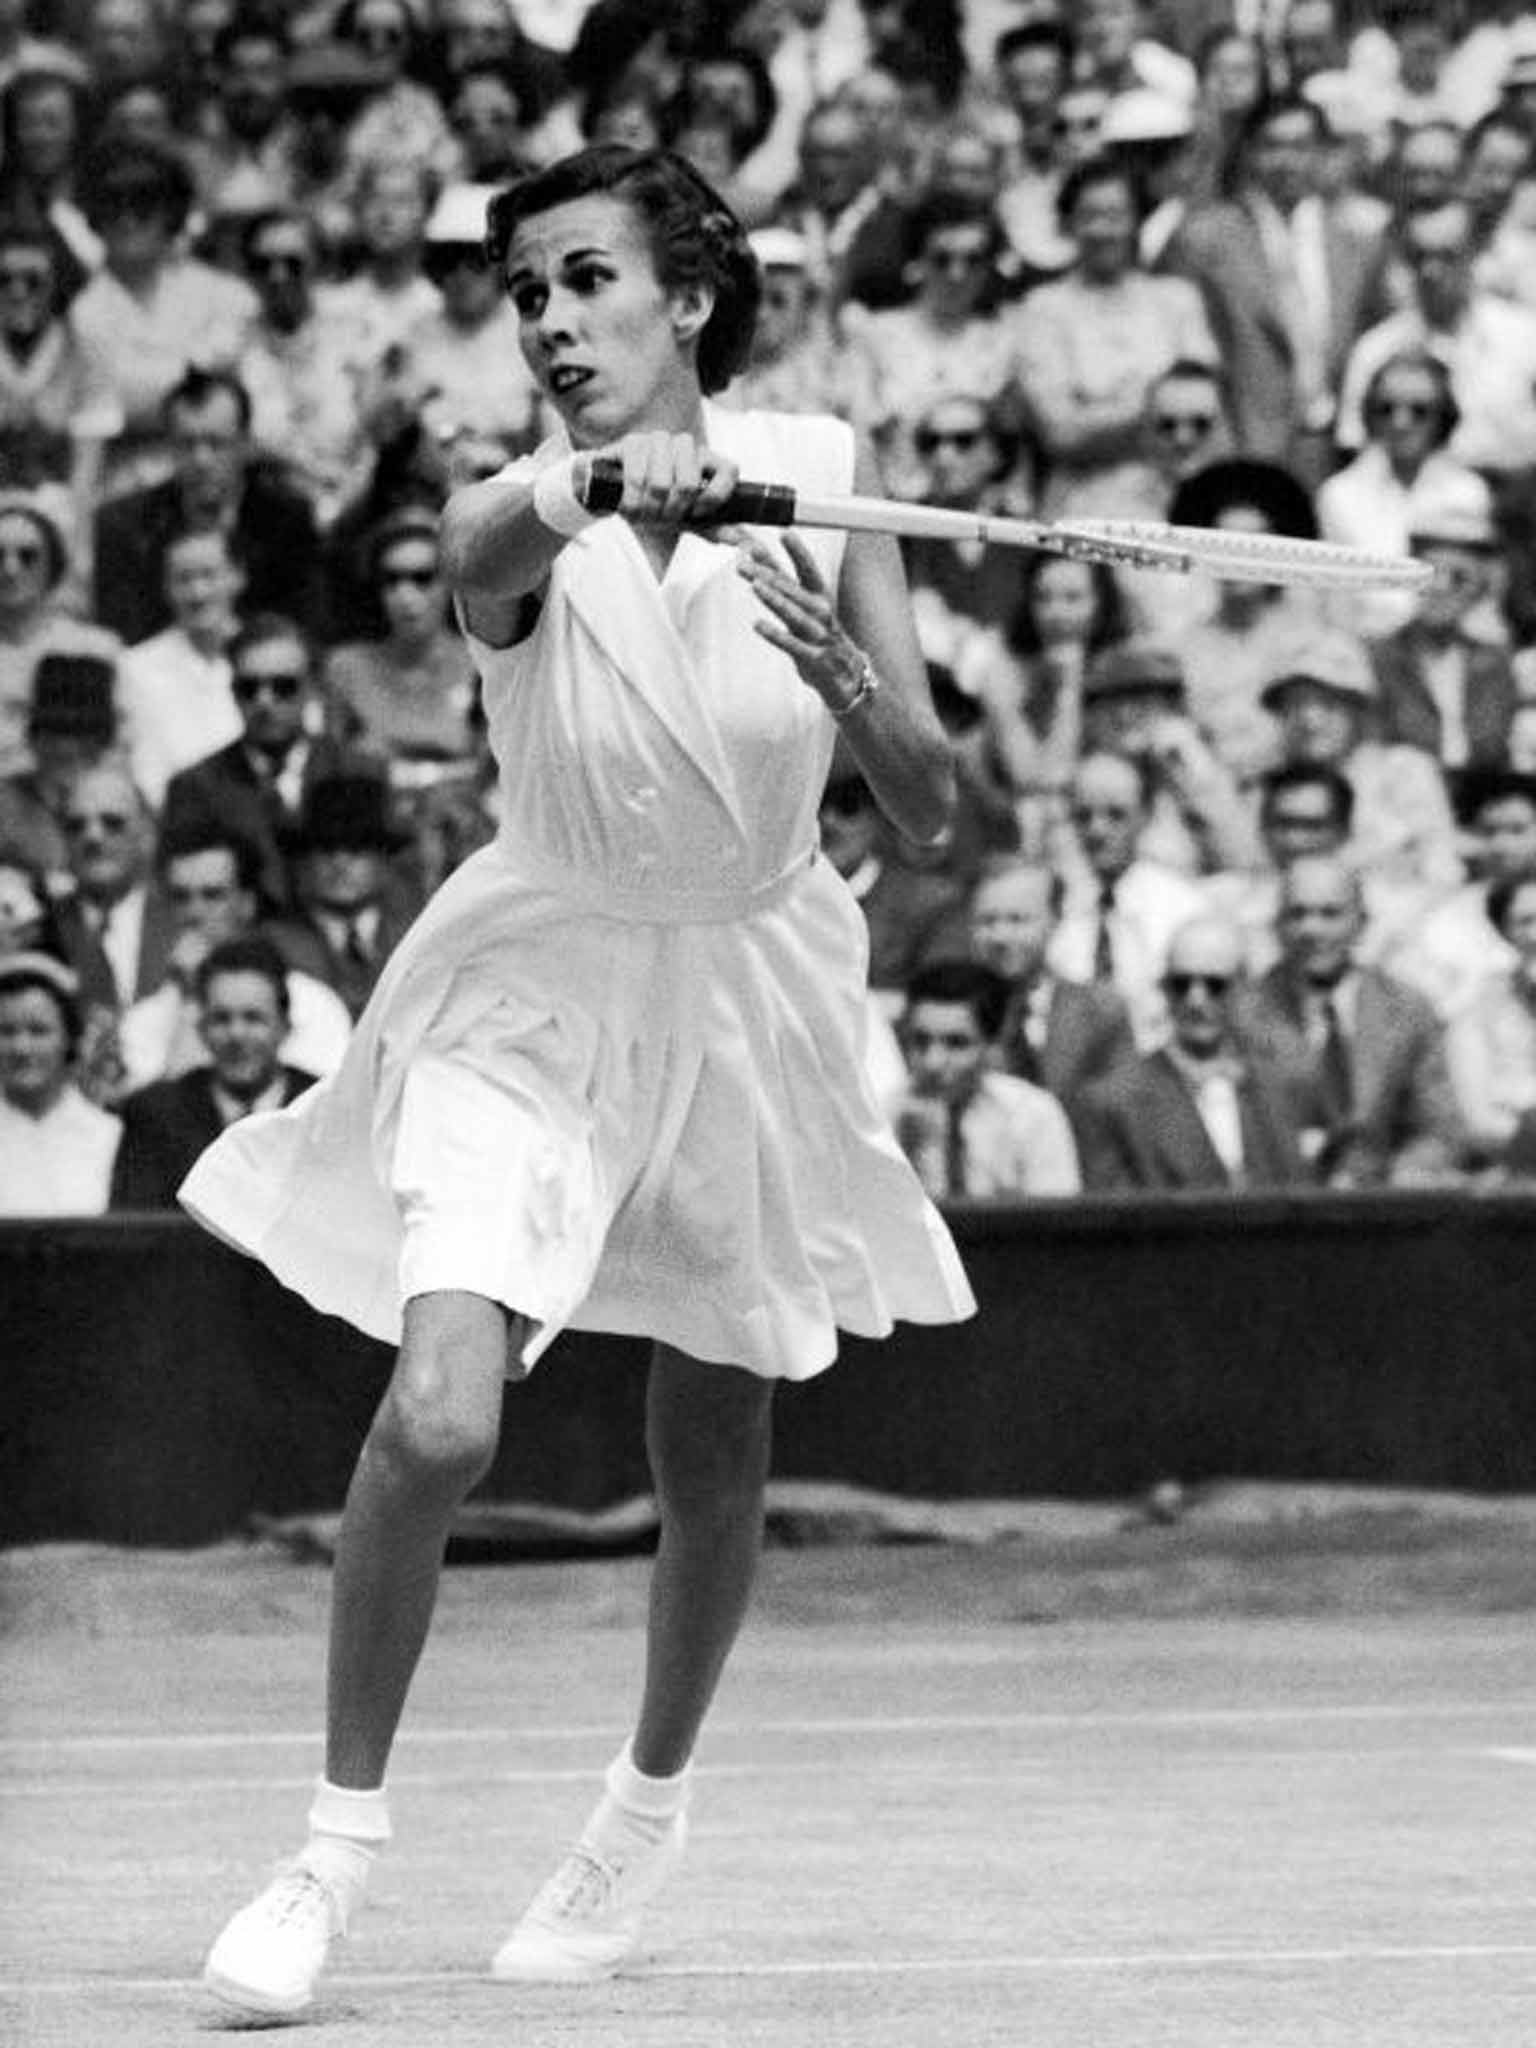 Doris Hart Tennis player who won every available Grand Slam title